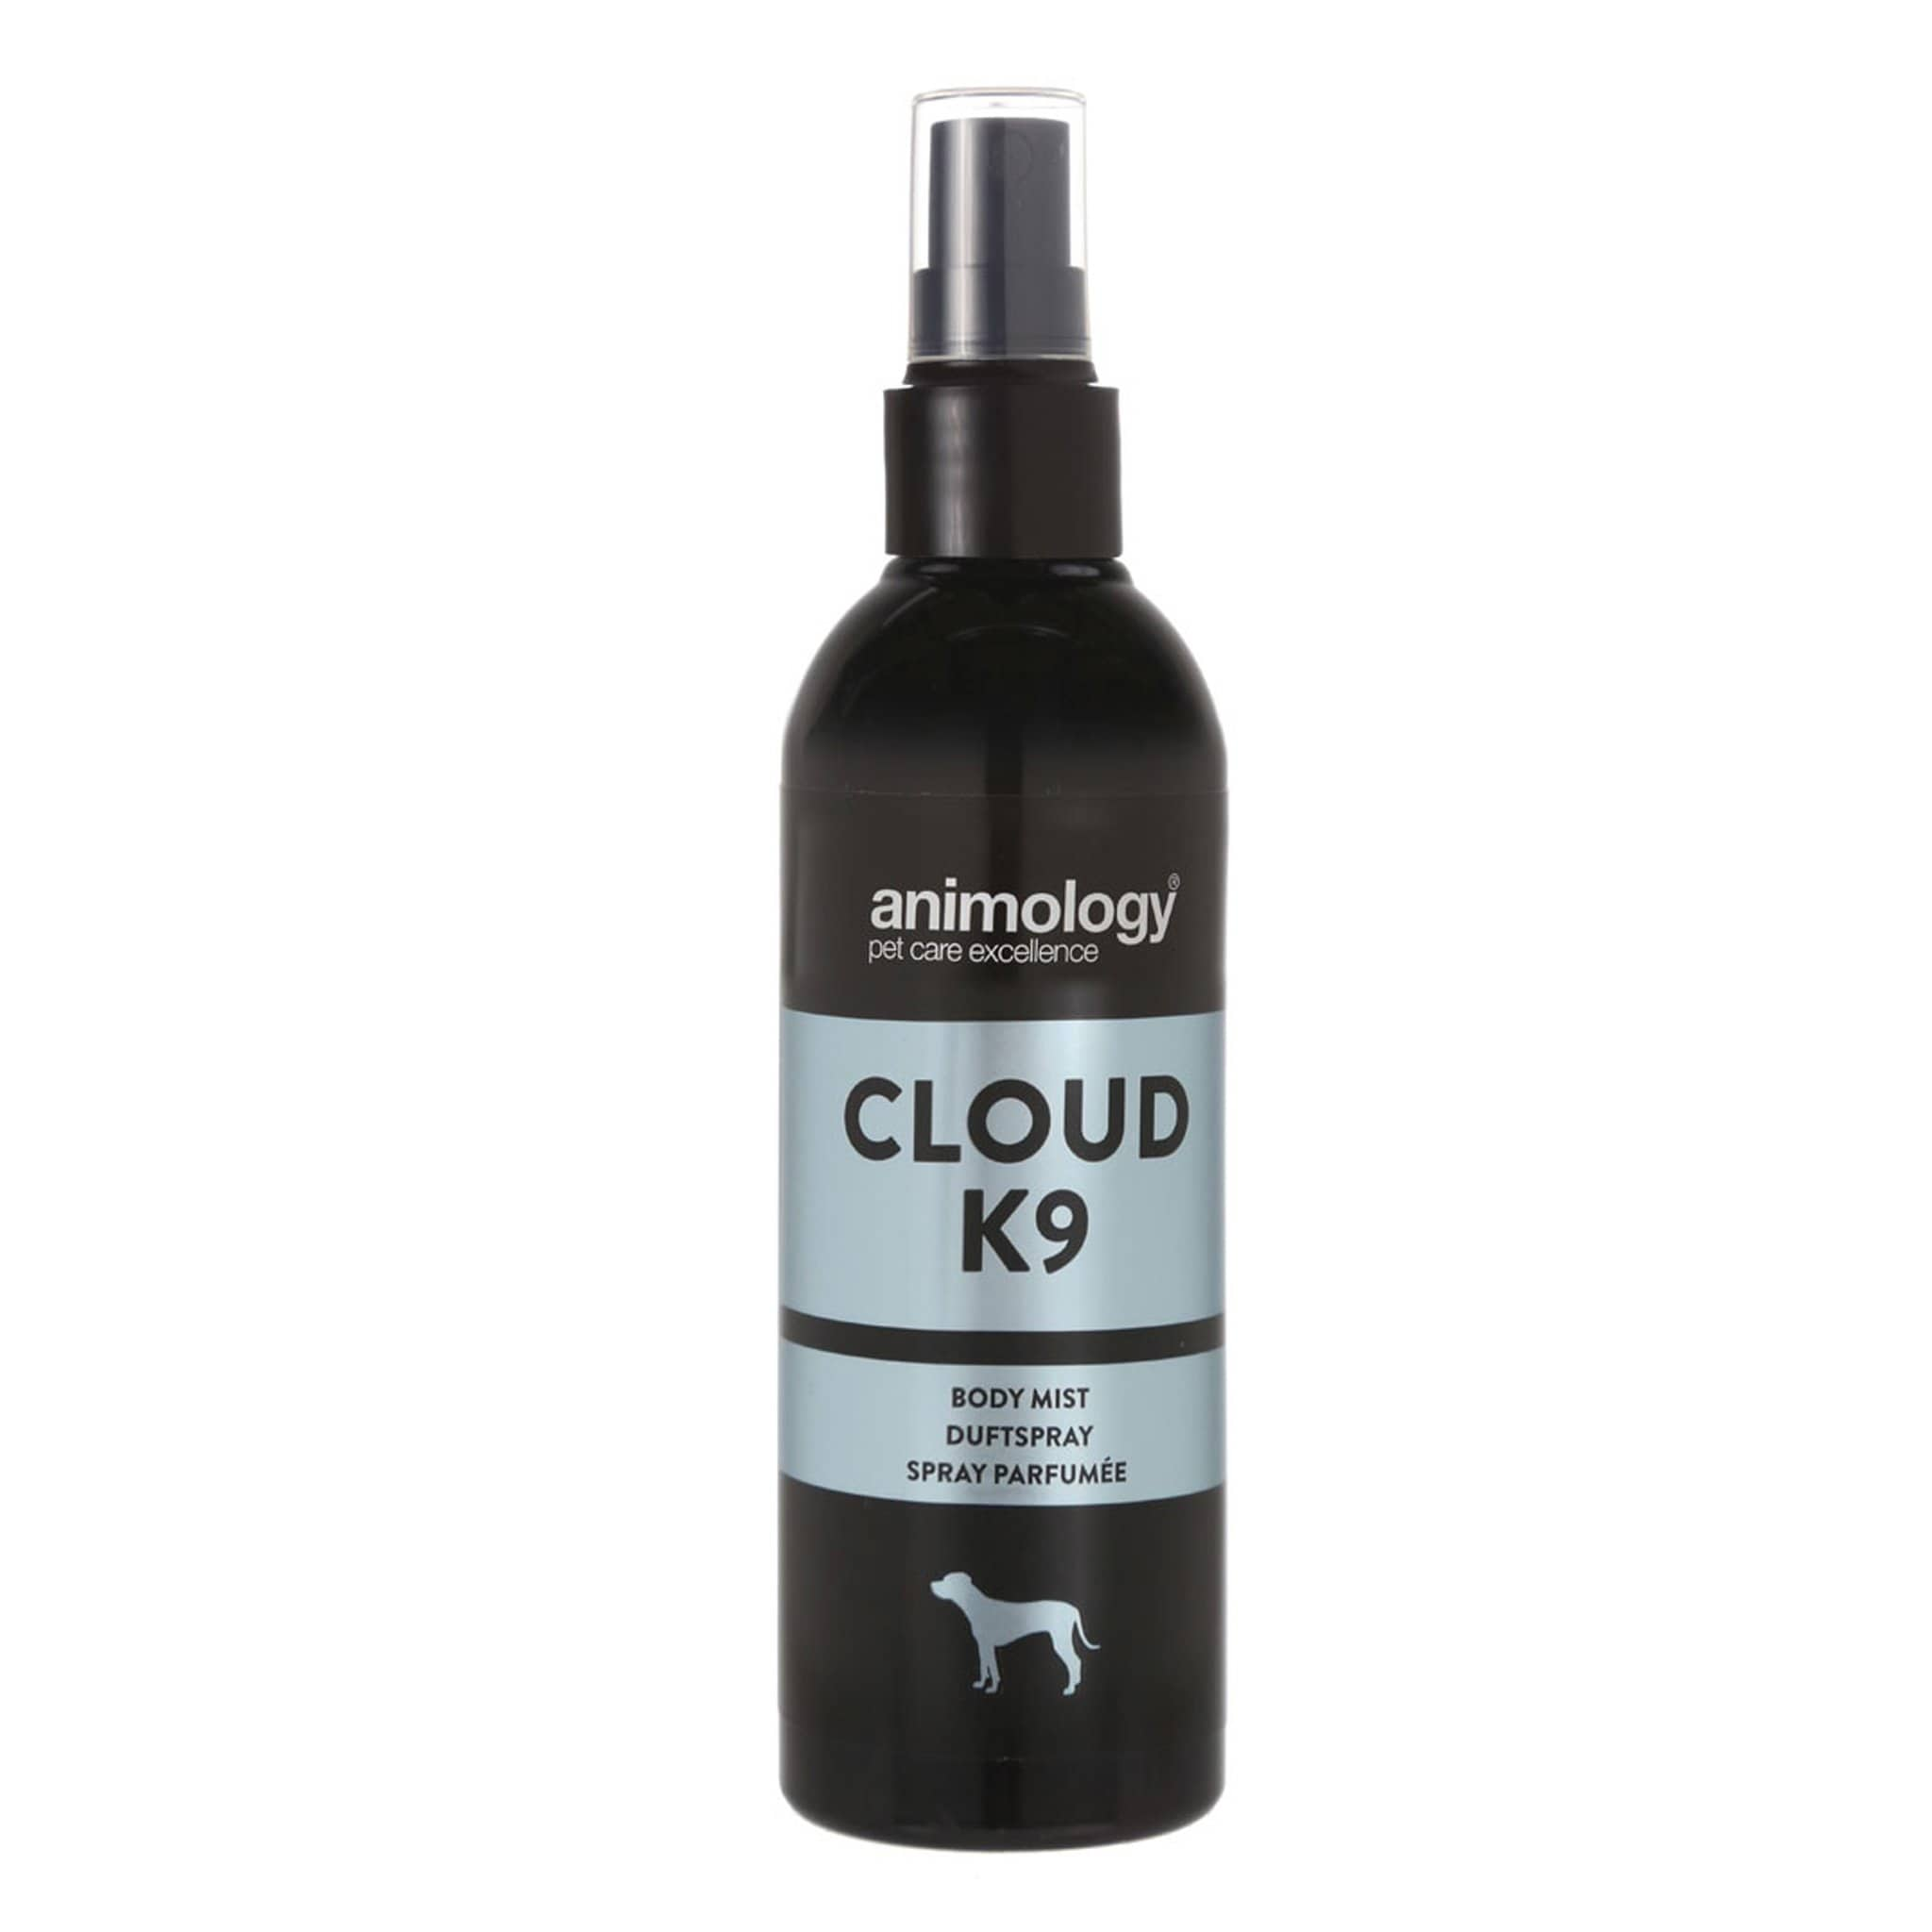 Animology Cloud K9 Dog Body Mist 26484 150ml Spray